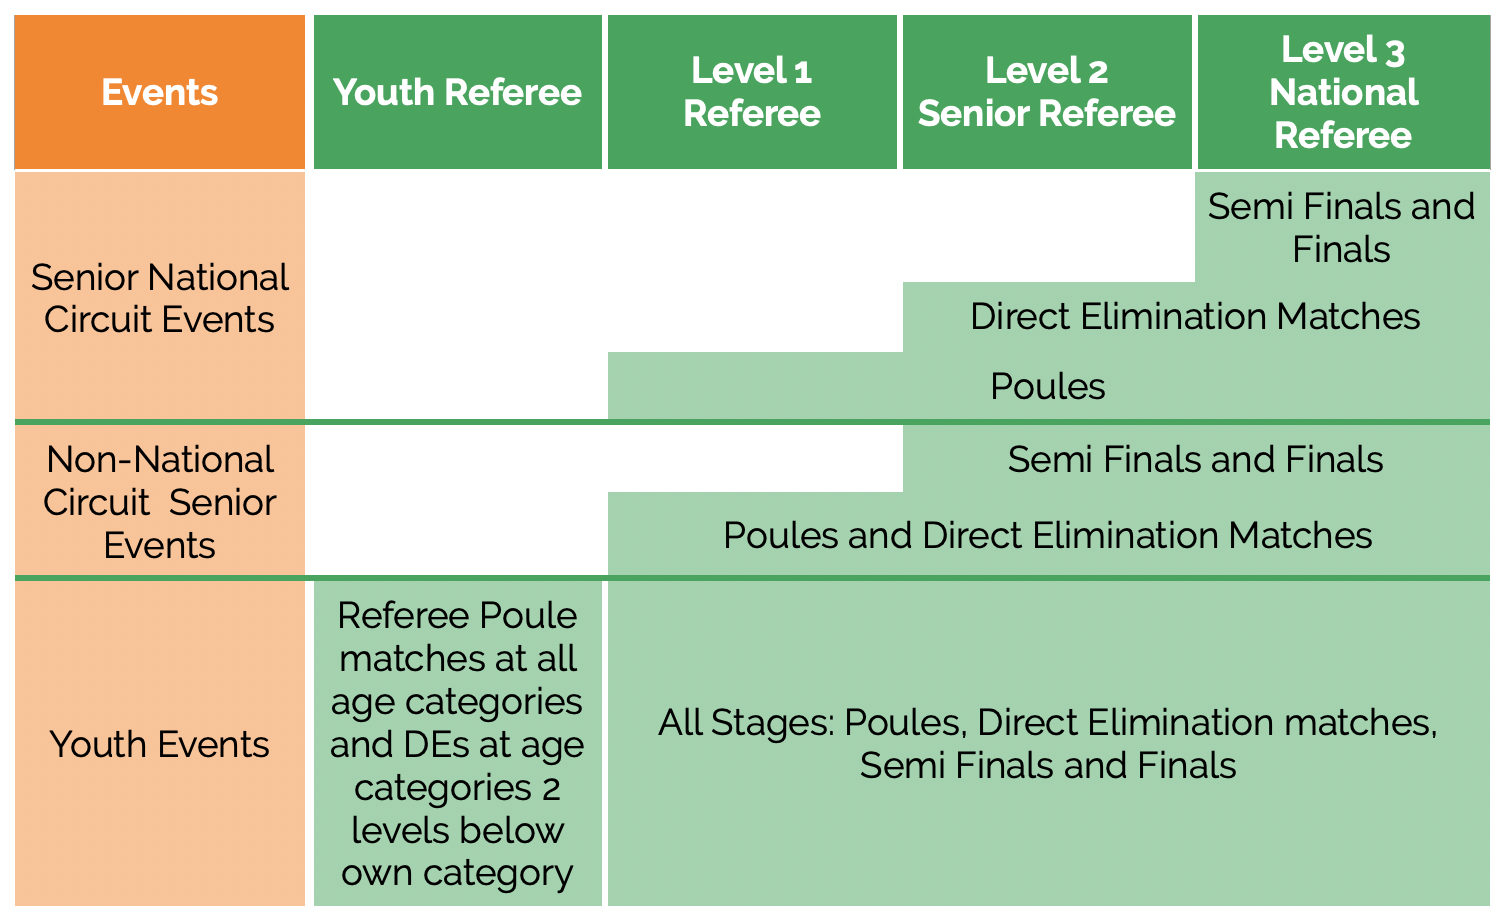 Relevant Competition Levels